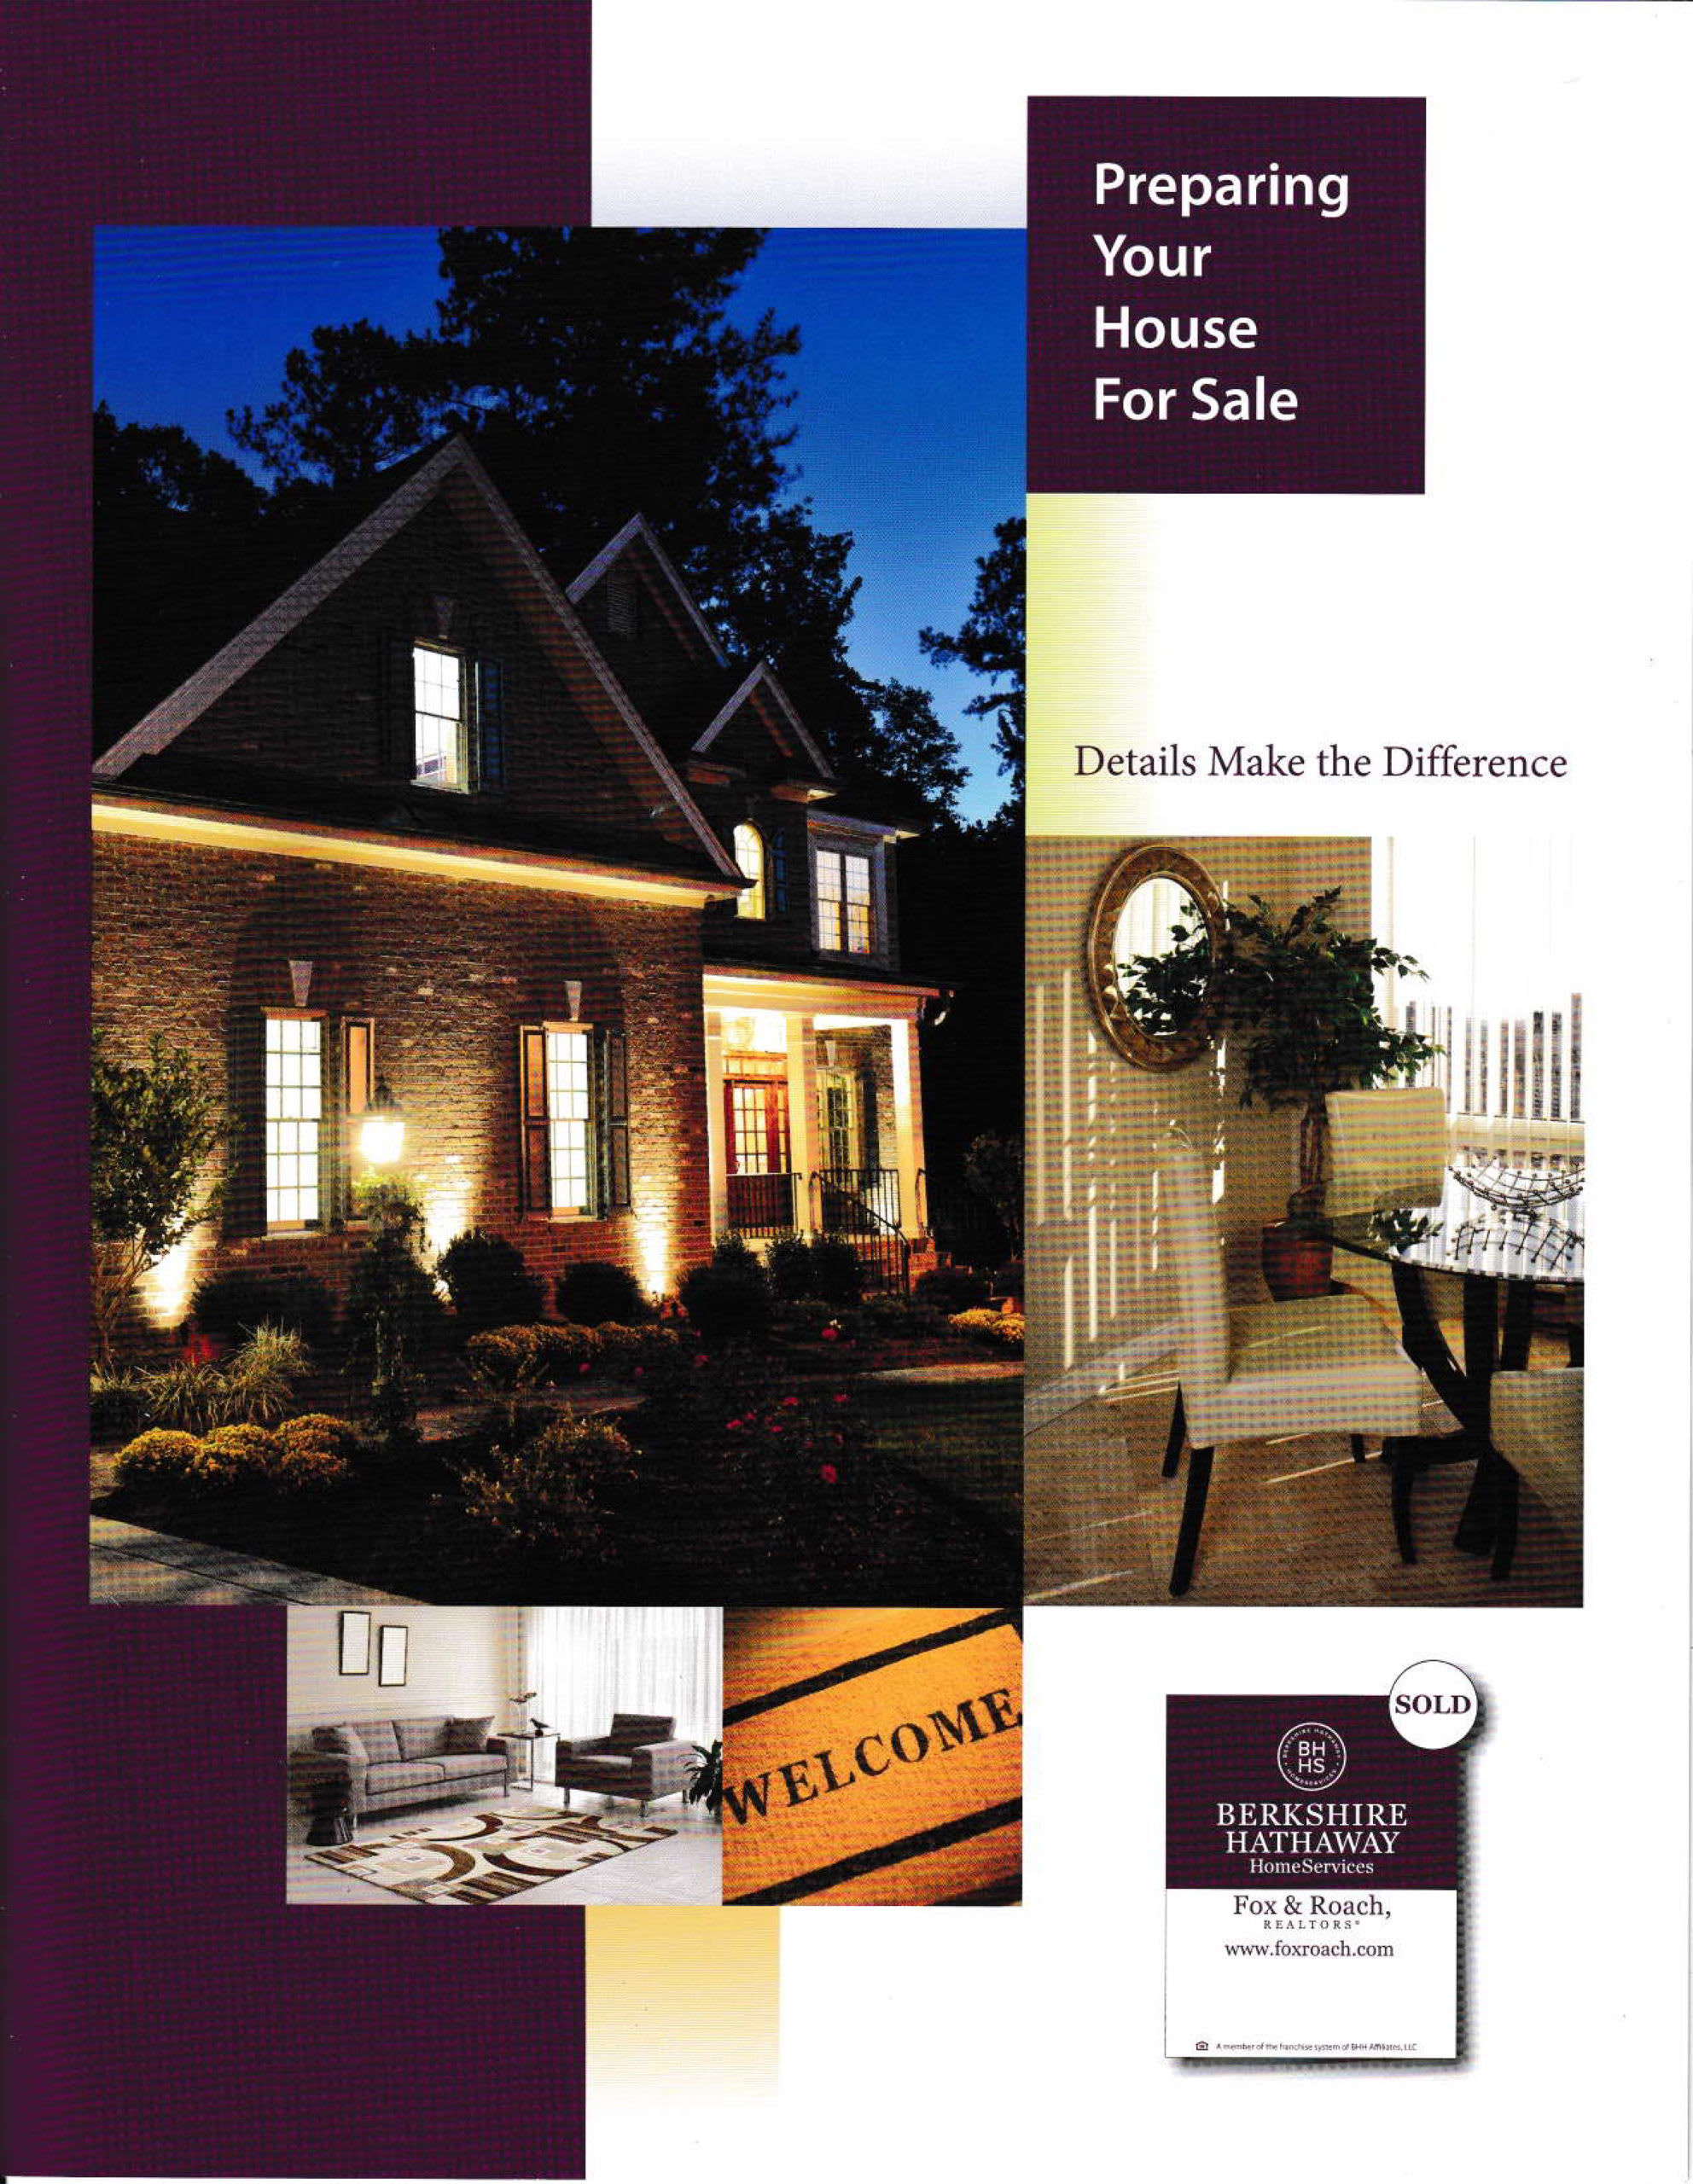 Preparing Your Housefor Sale